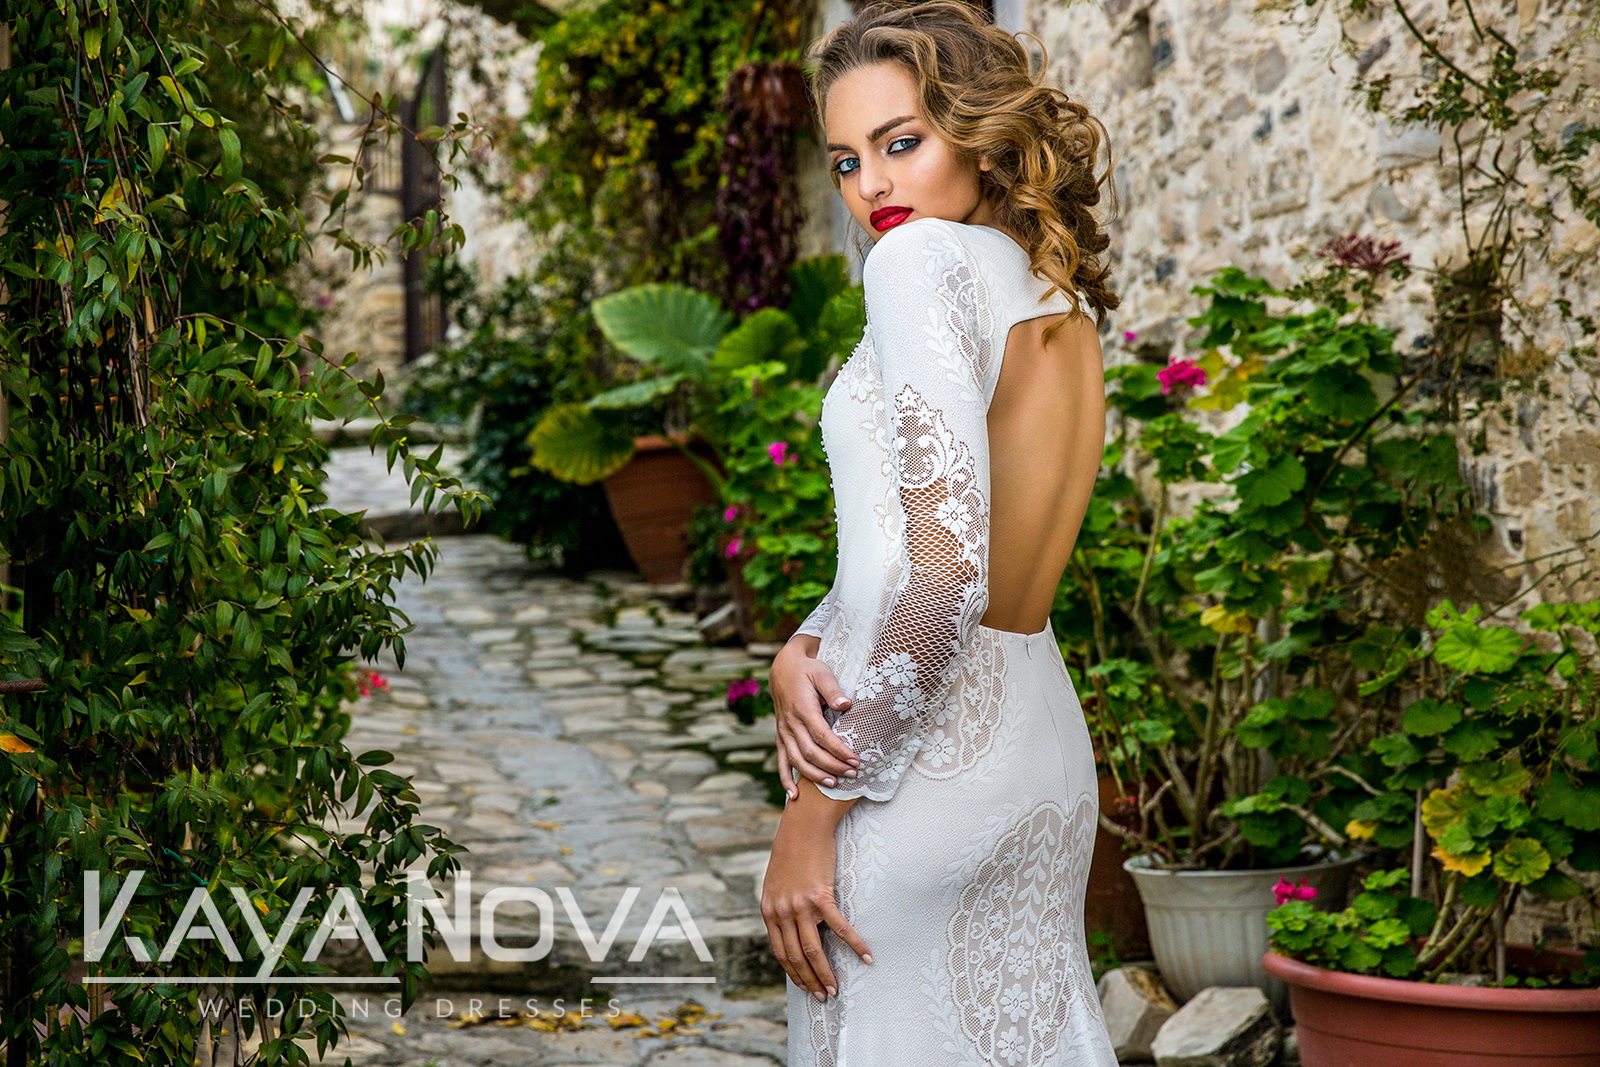 https://kayawedding.com/images/stories/virtuemart/product/Bellissima 3.jpg